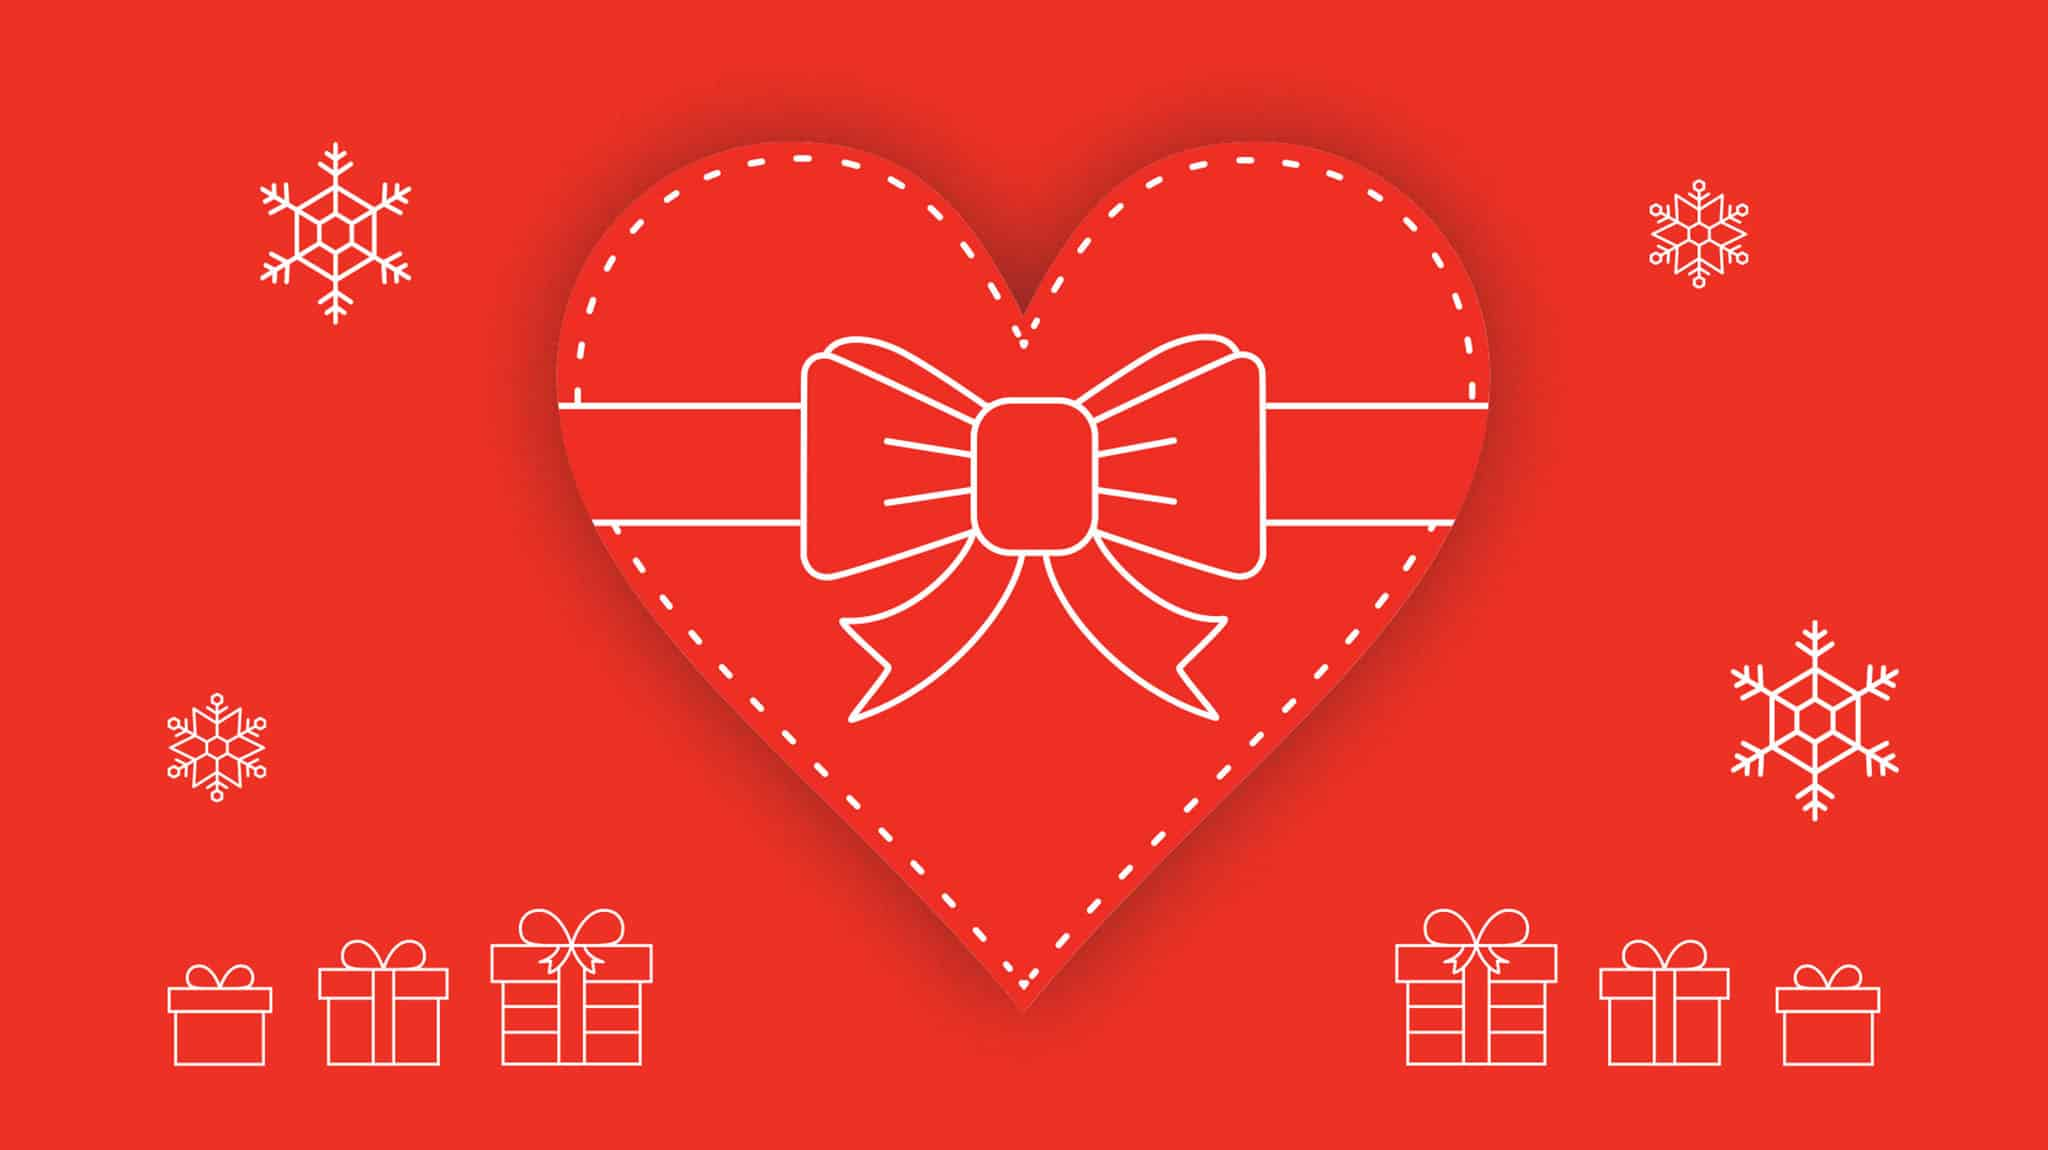 gift-wrapped heart image